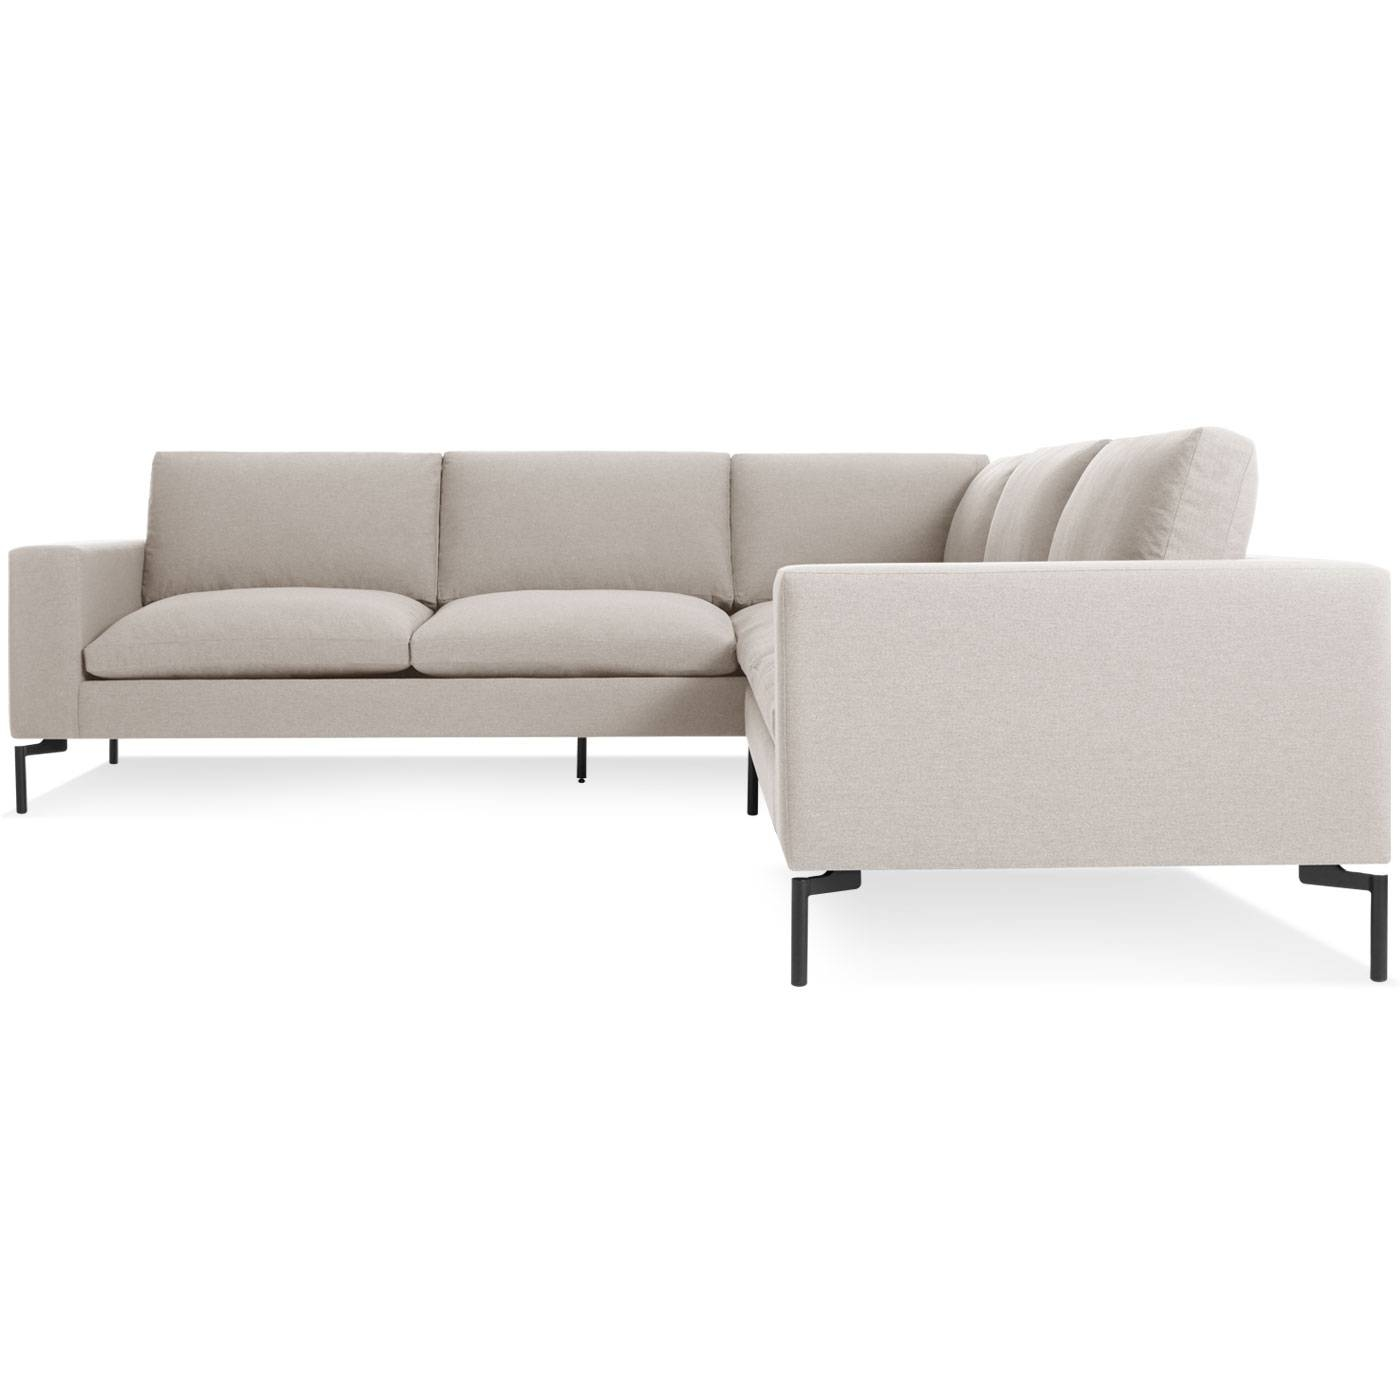 New Standard Small Sectional Sofa - Modern Sofas | Blu Dot inside Craftsman Sectional Sofa (Image 24 of 30)